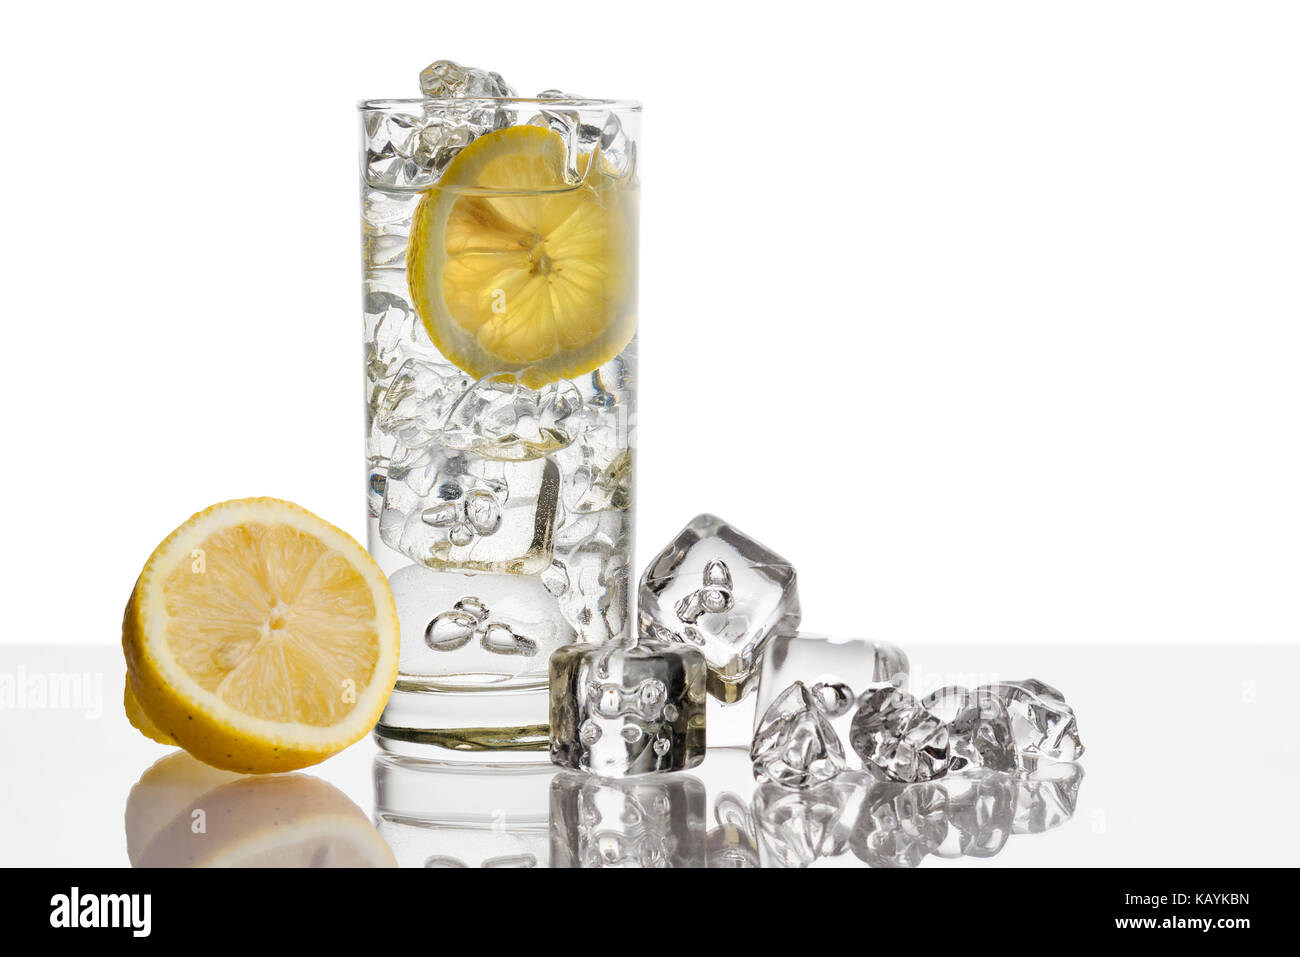 glass full of fresh water with lemon and ice cubes on background - Stock Image